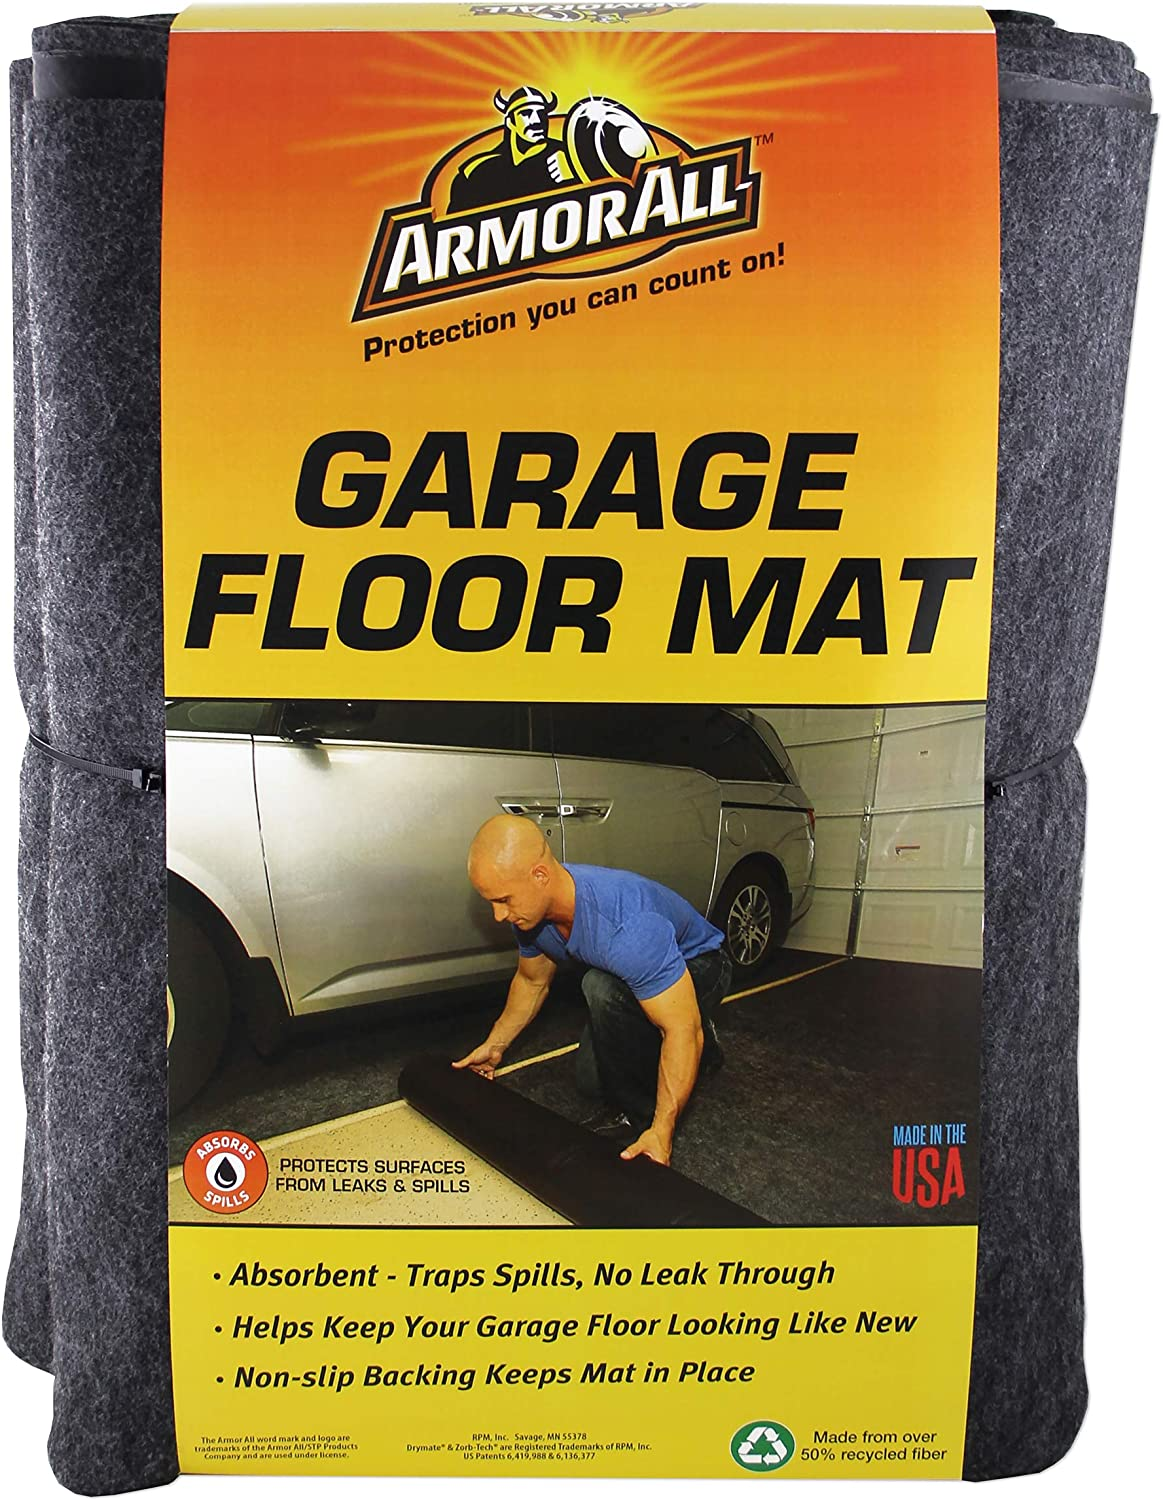 Armor All Garage Floor Mat}